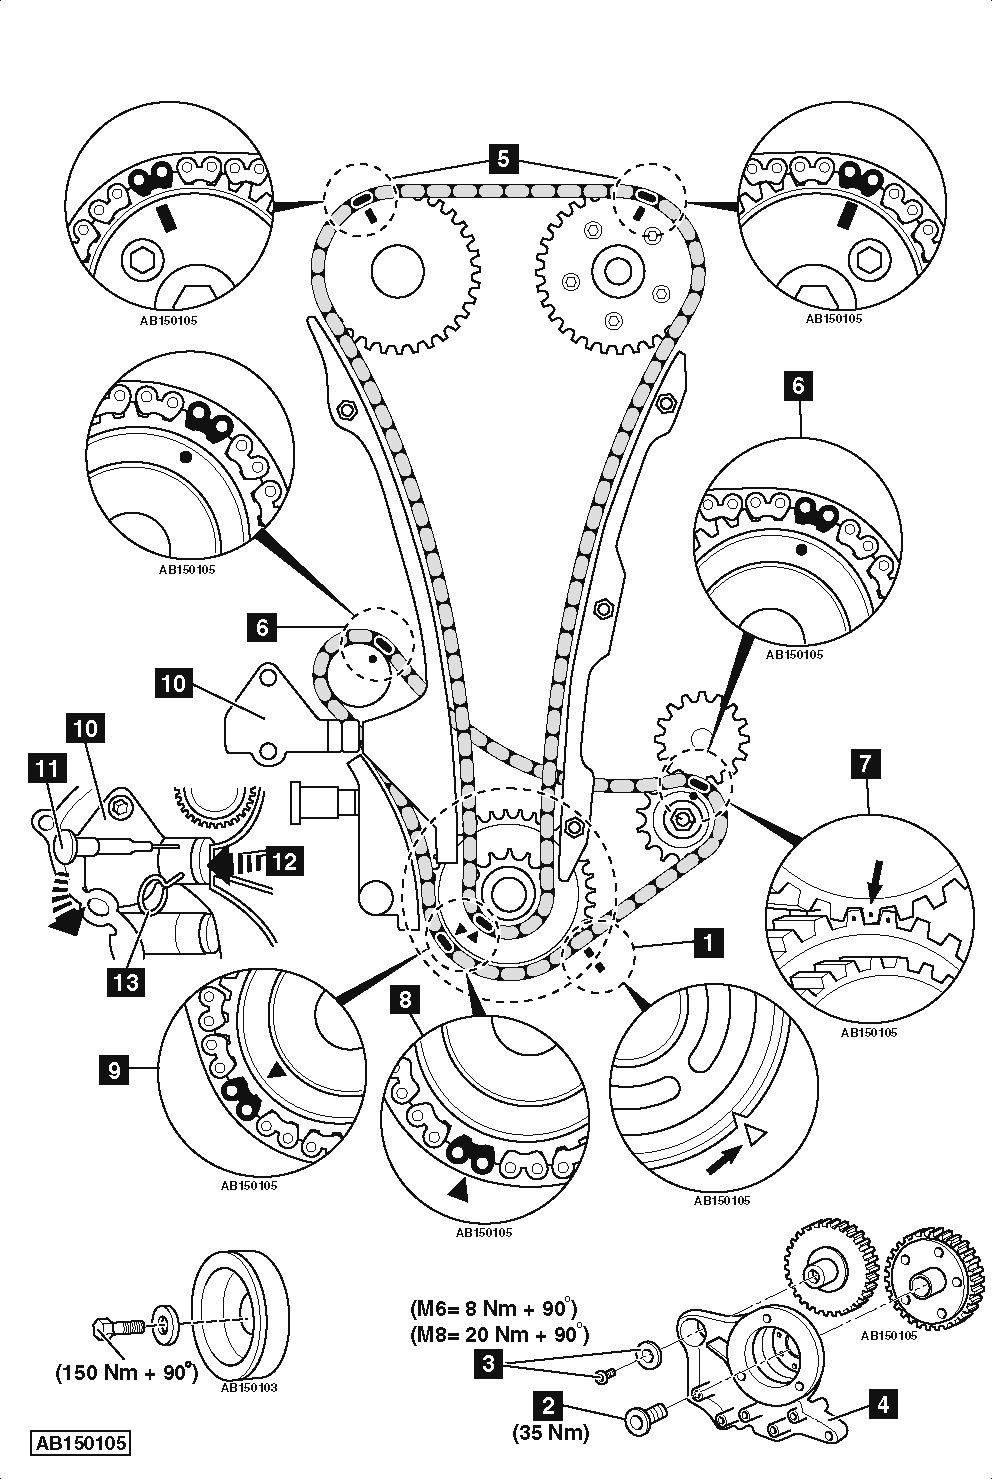 Timing Chain Timing 50253 further 291010532780 in addition P 0996b43f80376efb together with 1999 also 5477o E350 Passenger Van The Front Air Blows Cold Lines Hot Air. on chevy trailblazer 4 2 engine diagram